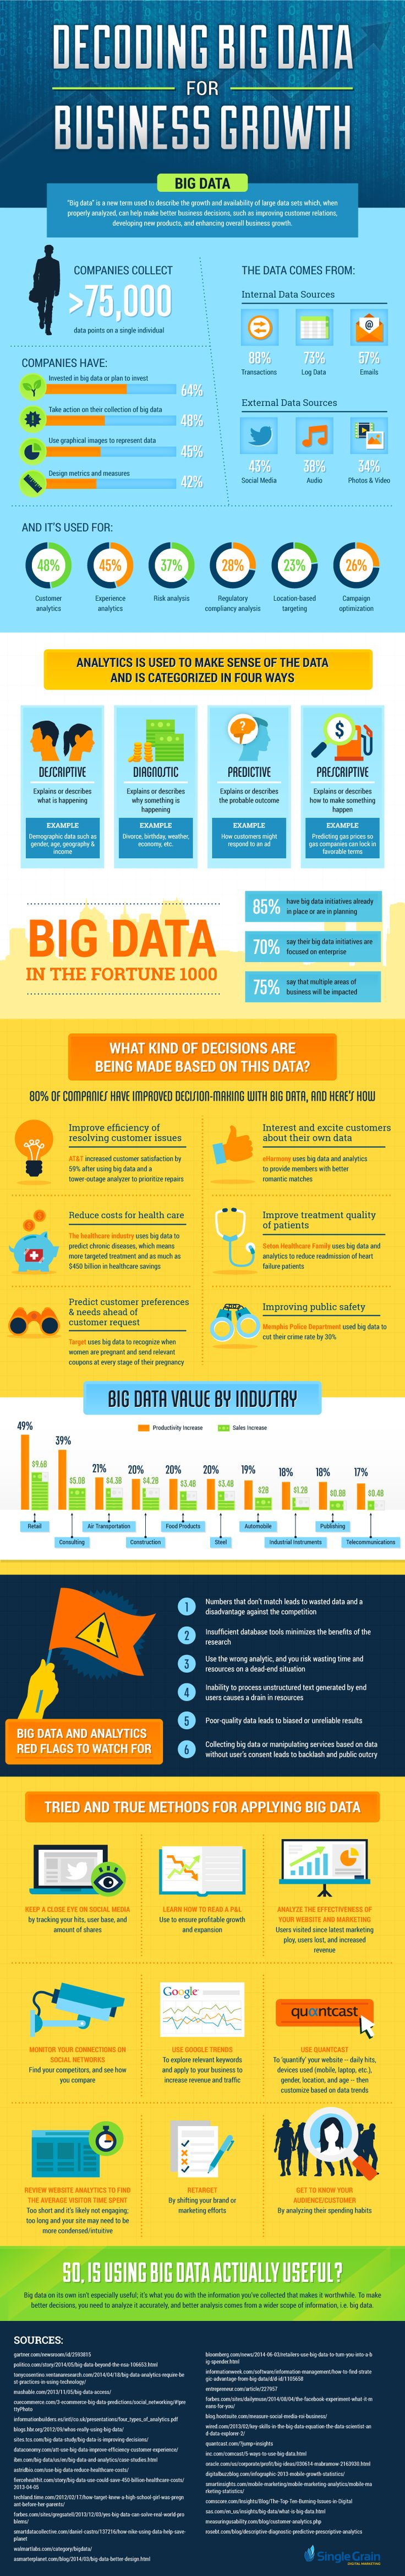 Decoding Big Data for Business Growth #infographic #BigData #Business